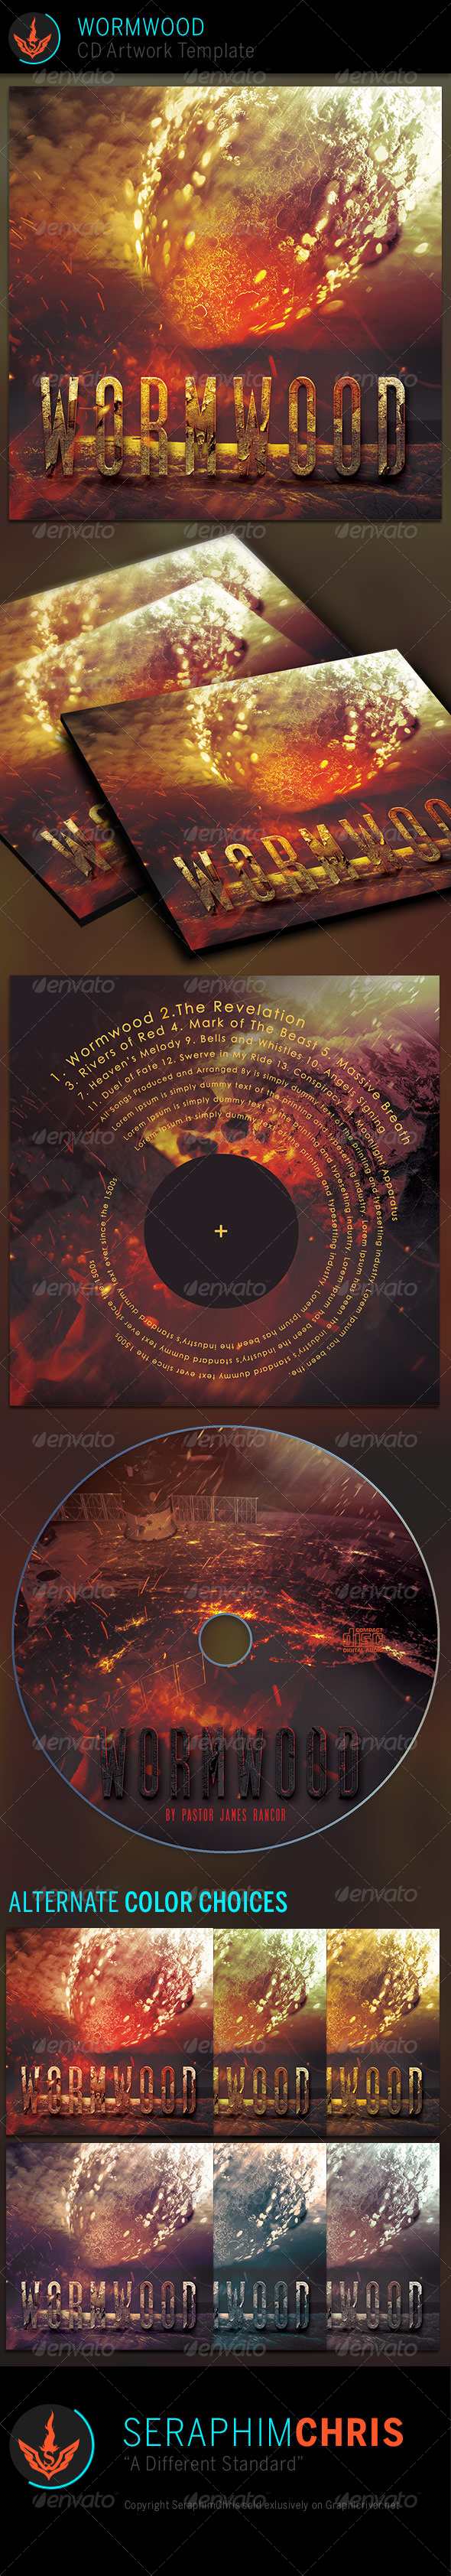 Wormwood: CD Artwork Template - CD & DVD Artwork Print Templates